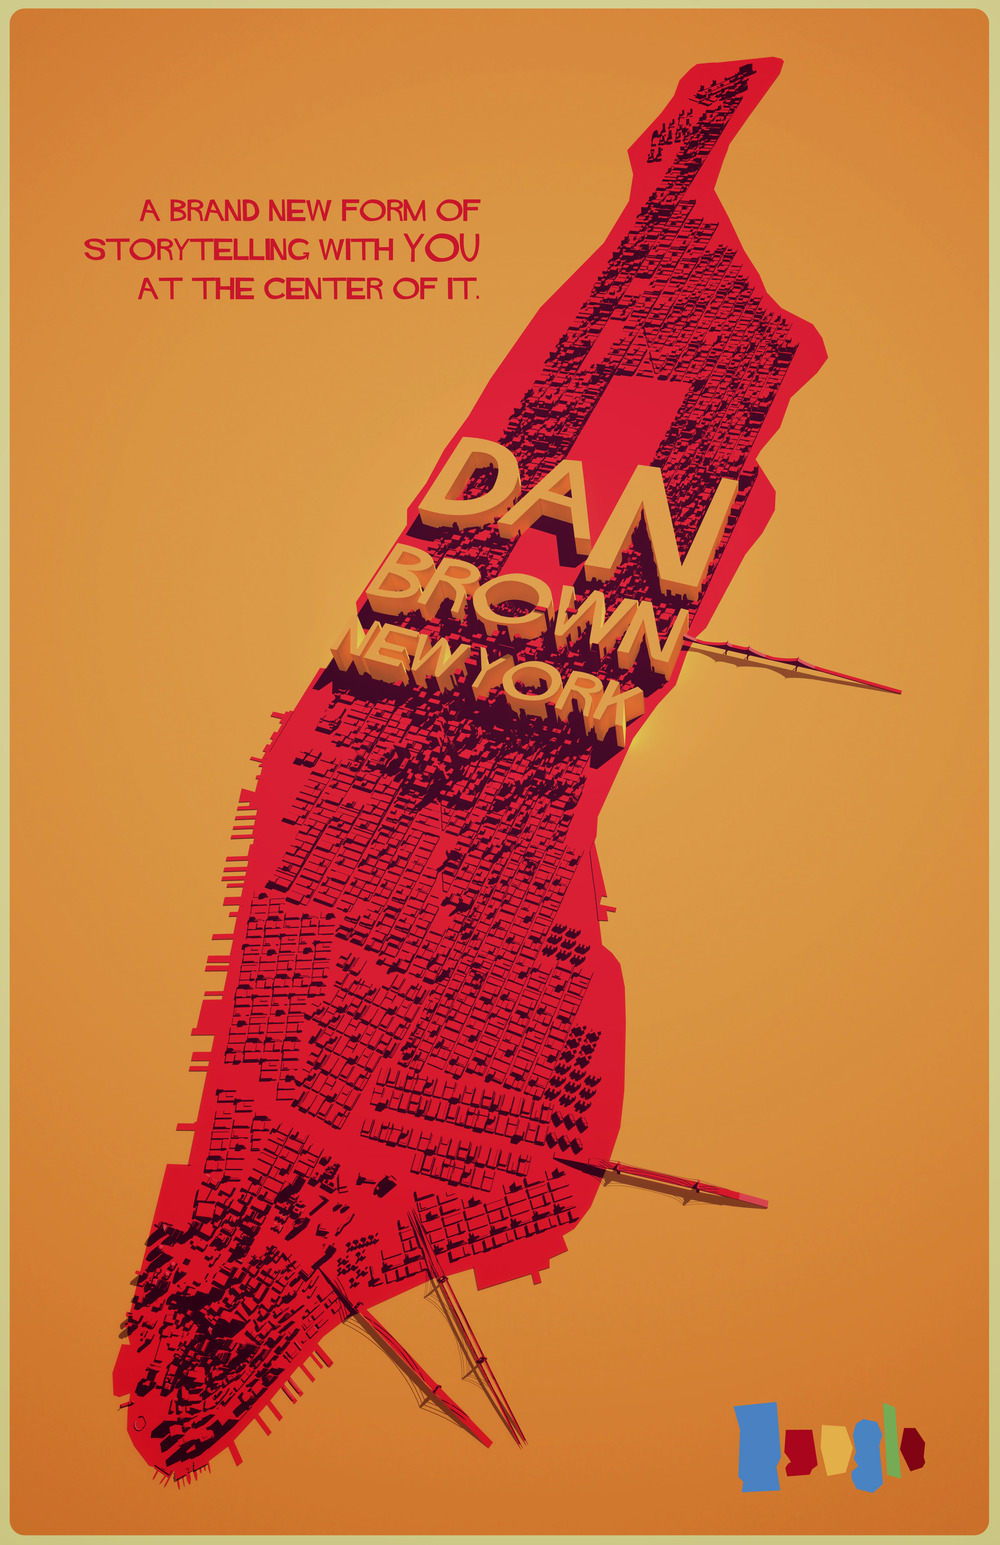 dan brown new york poster design chris carmichael